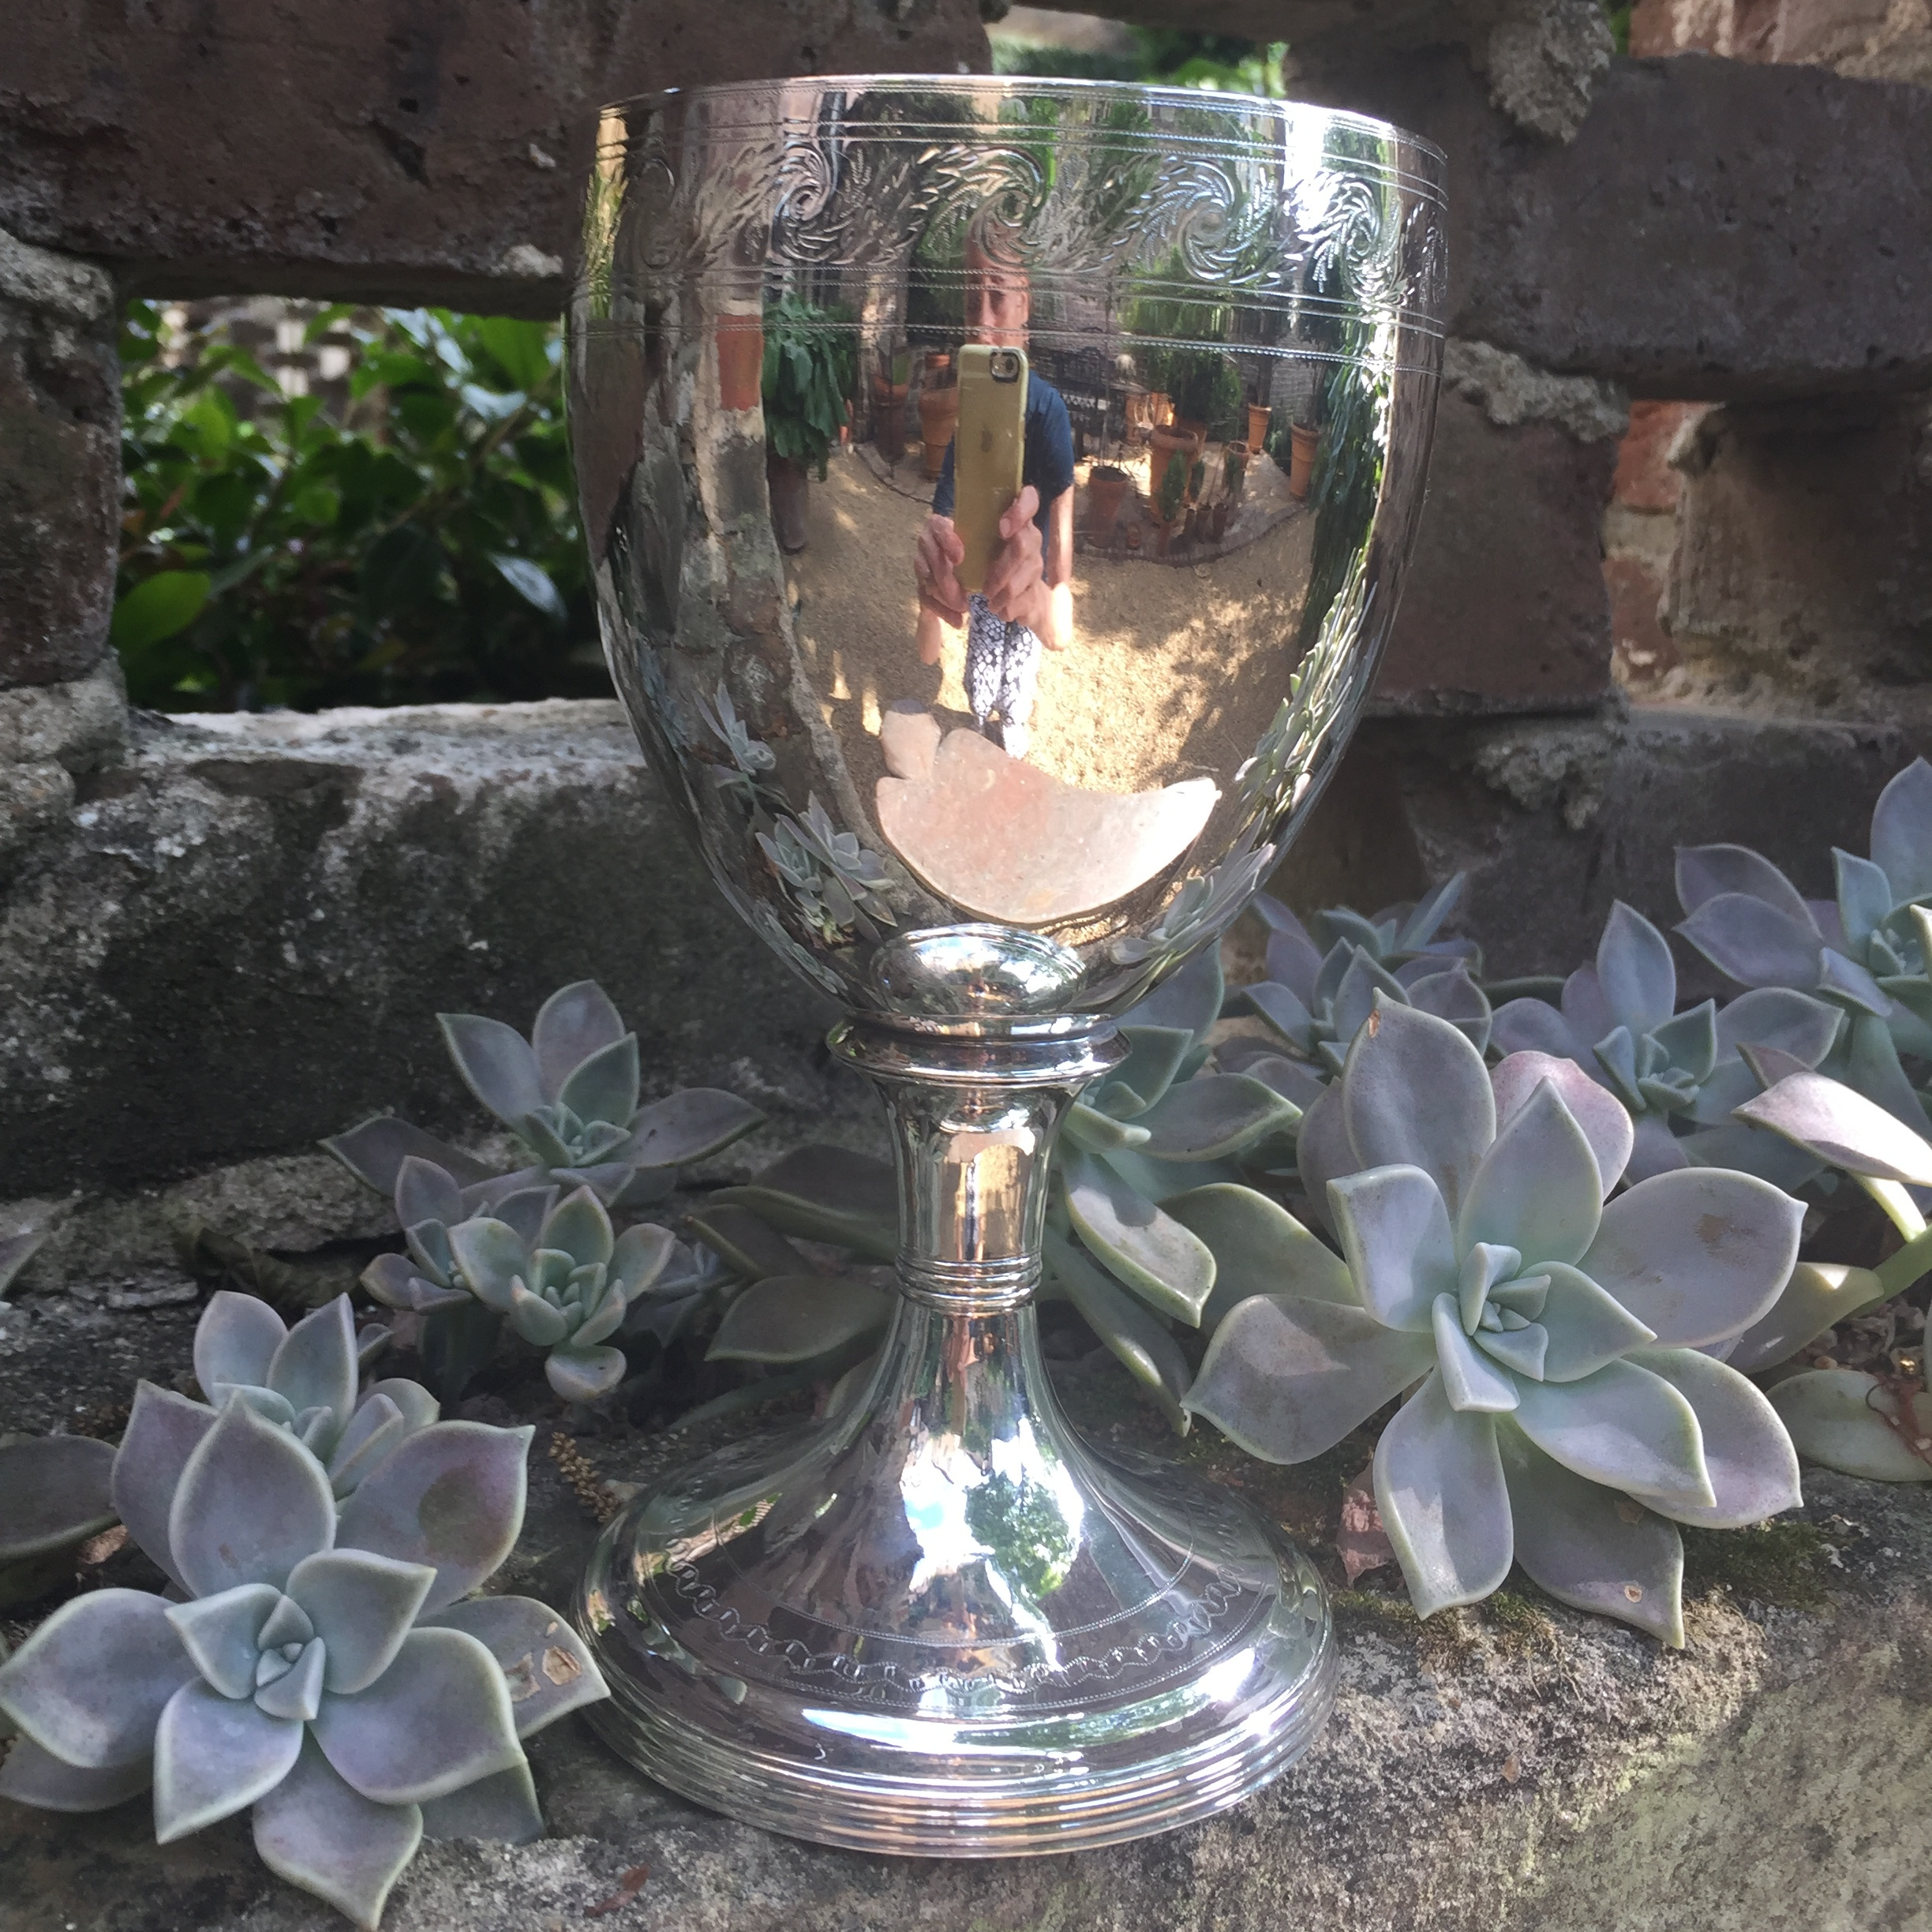 & a silver chalice, to reflect it all.